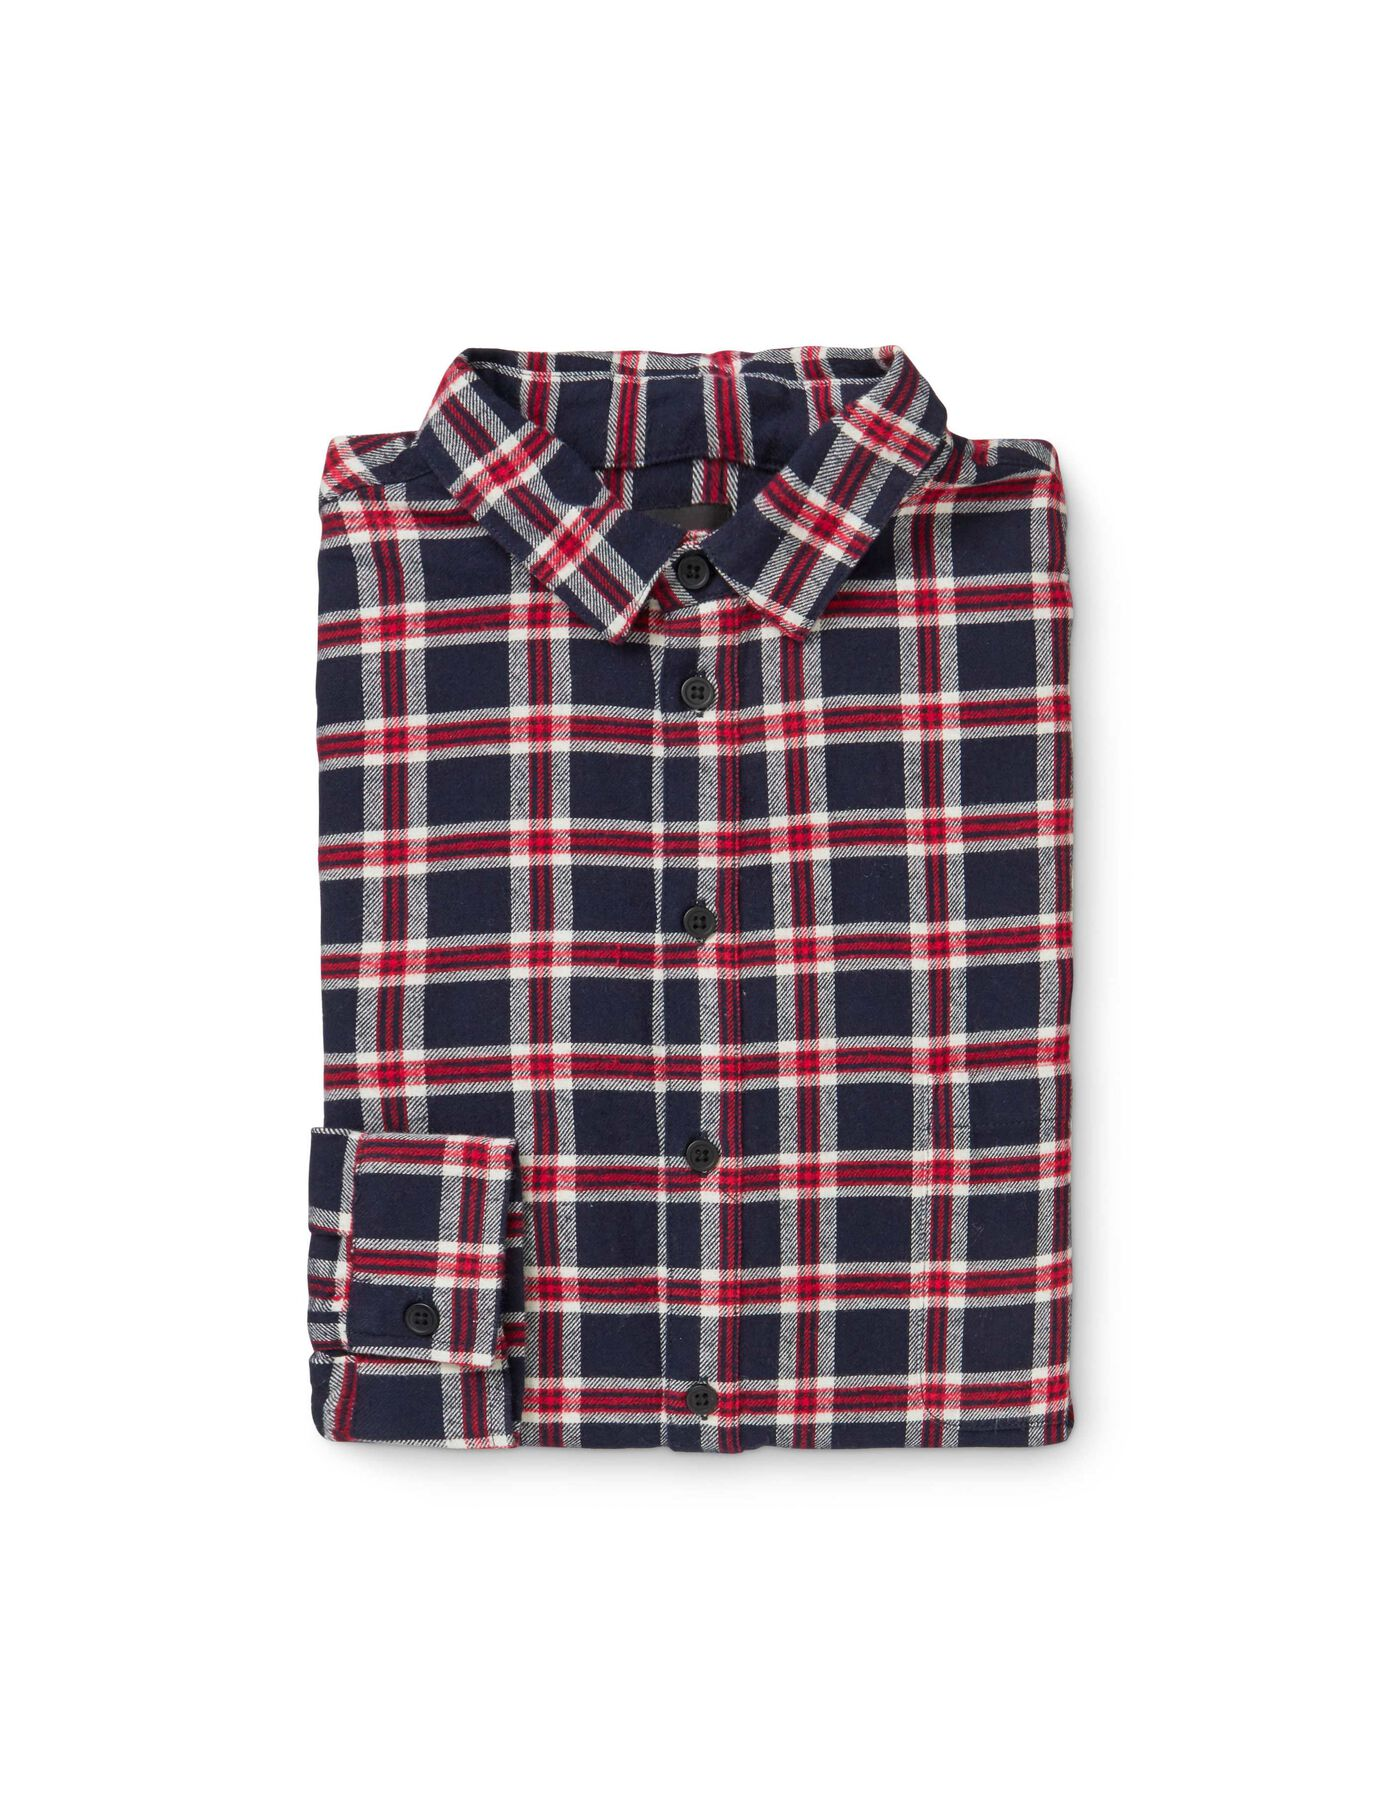 MELLOW CH2 SHIRT in Pattern from Tiger of Sweden